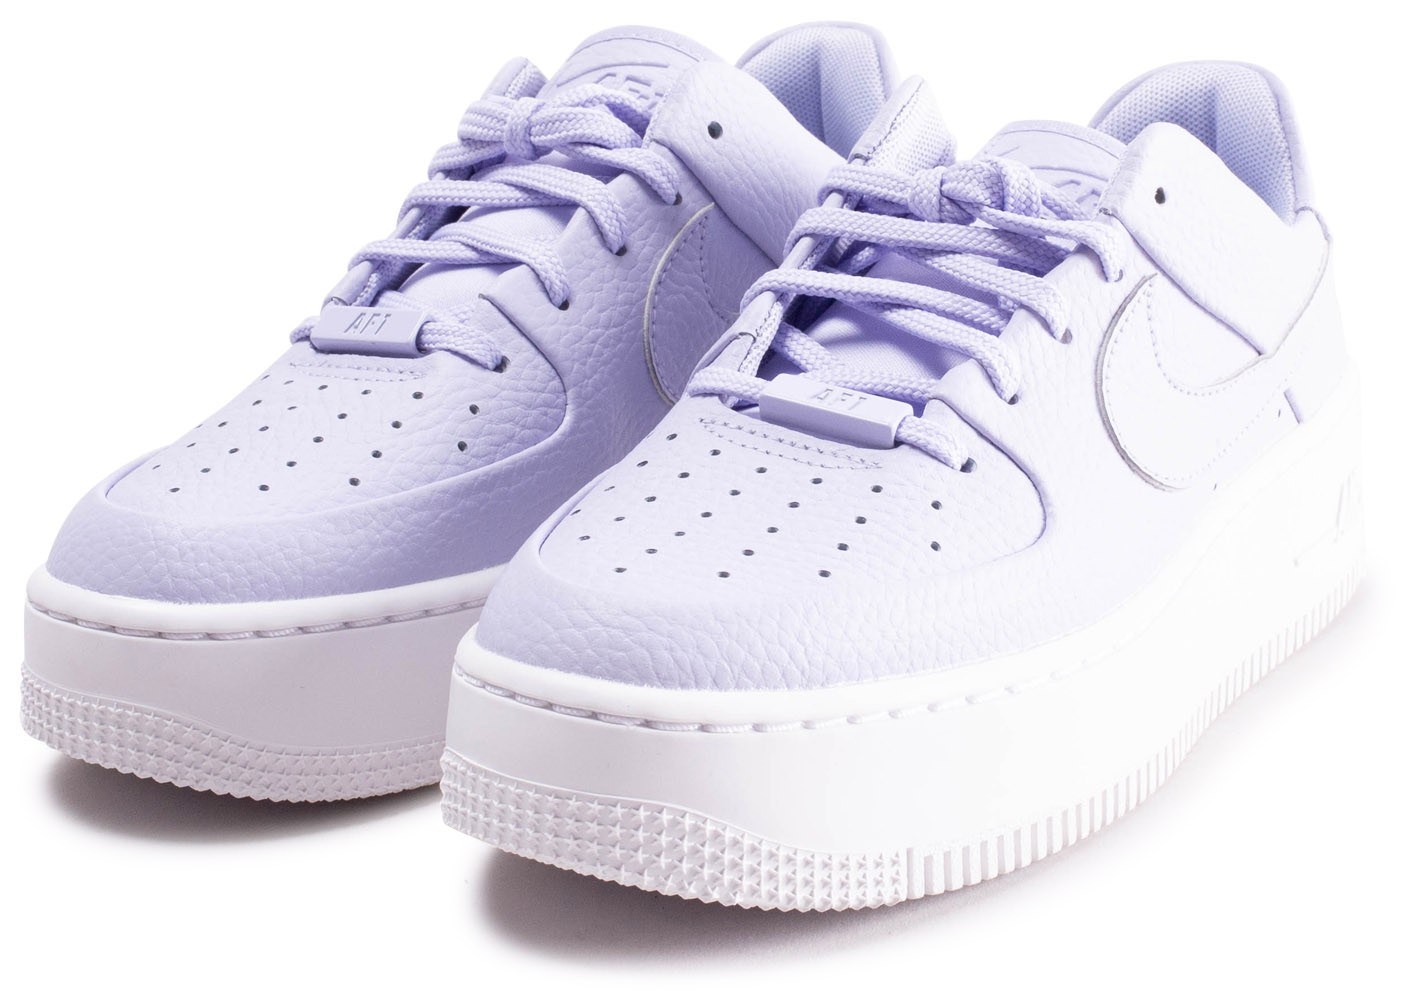 Nike Air Force 1 Sage Low violette - Chaussures Baskets femme ...